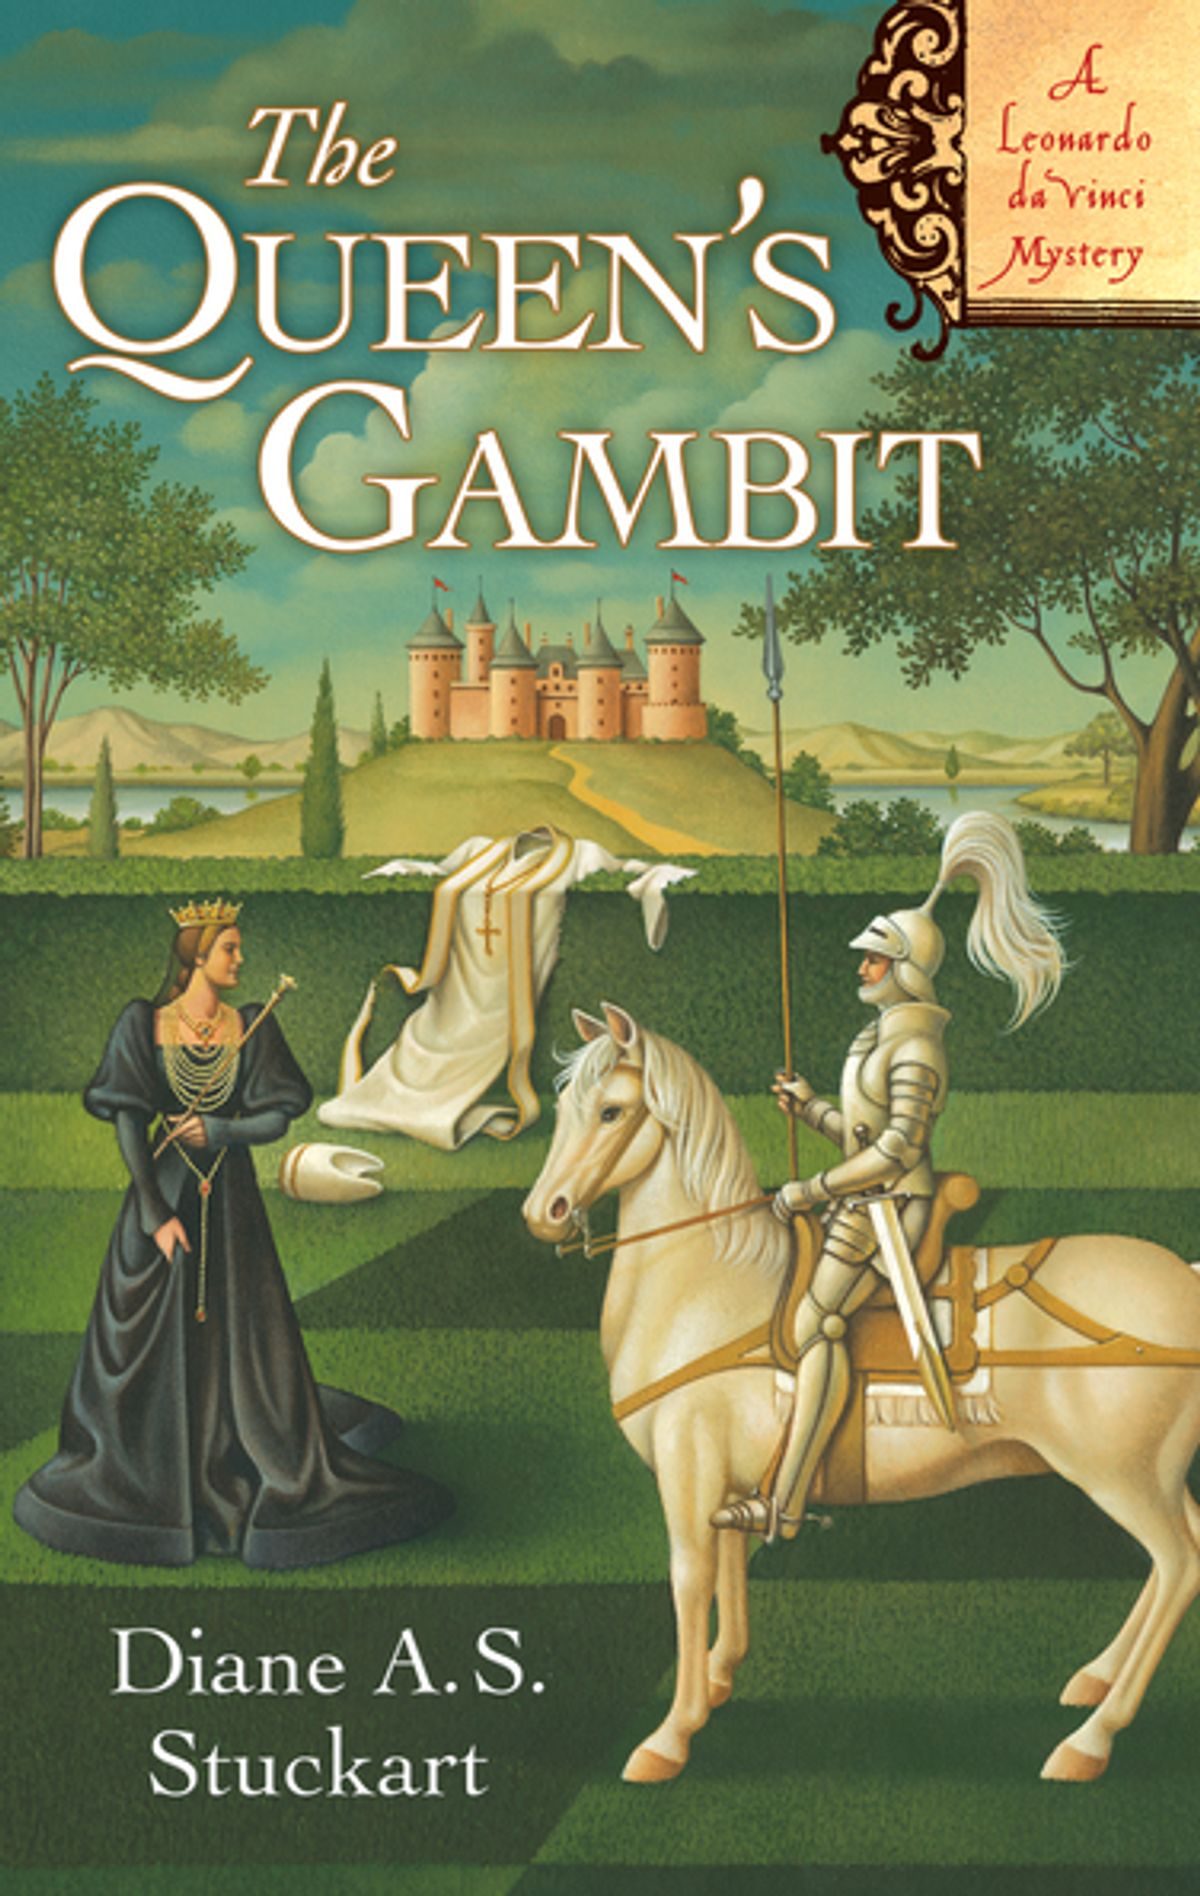 """The Queen's Gambit by Diane A.S. Stuckart - This is another murder mystery (what is it about Leonardo that inspires murder plots?) set during Leonardo's years up in Milan serving Duke Sforza. It's a great story with lots of plot twists and was a particularly fun version of """"Leonardo as detective,"""" which seems to be a running theme."""